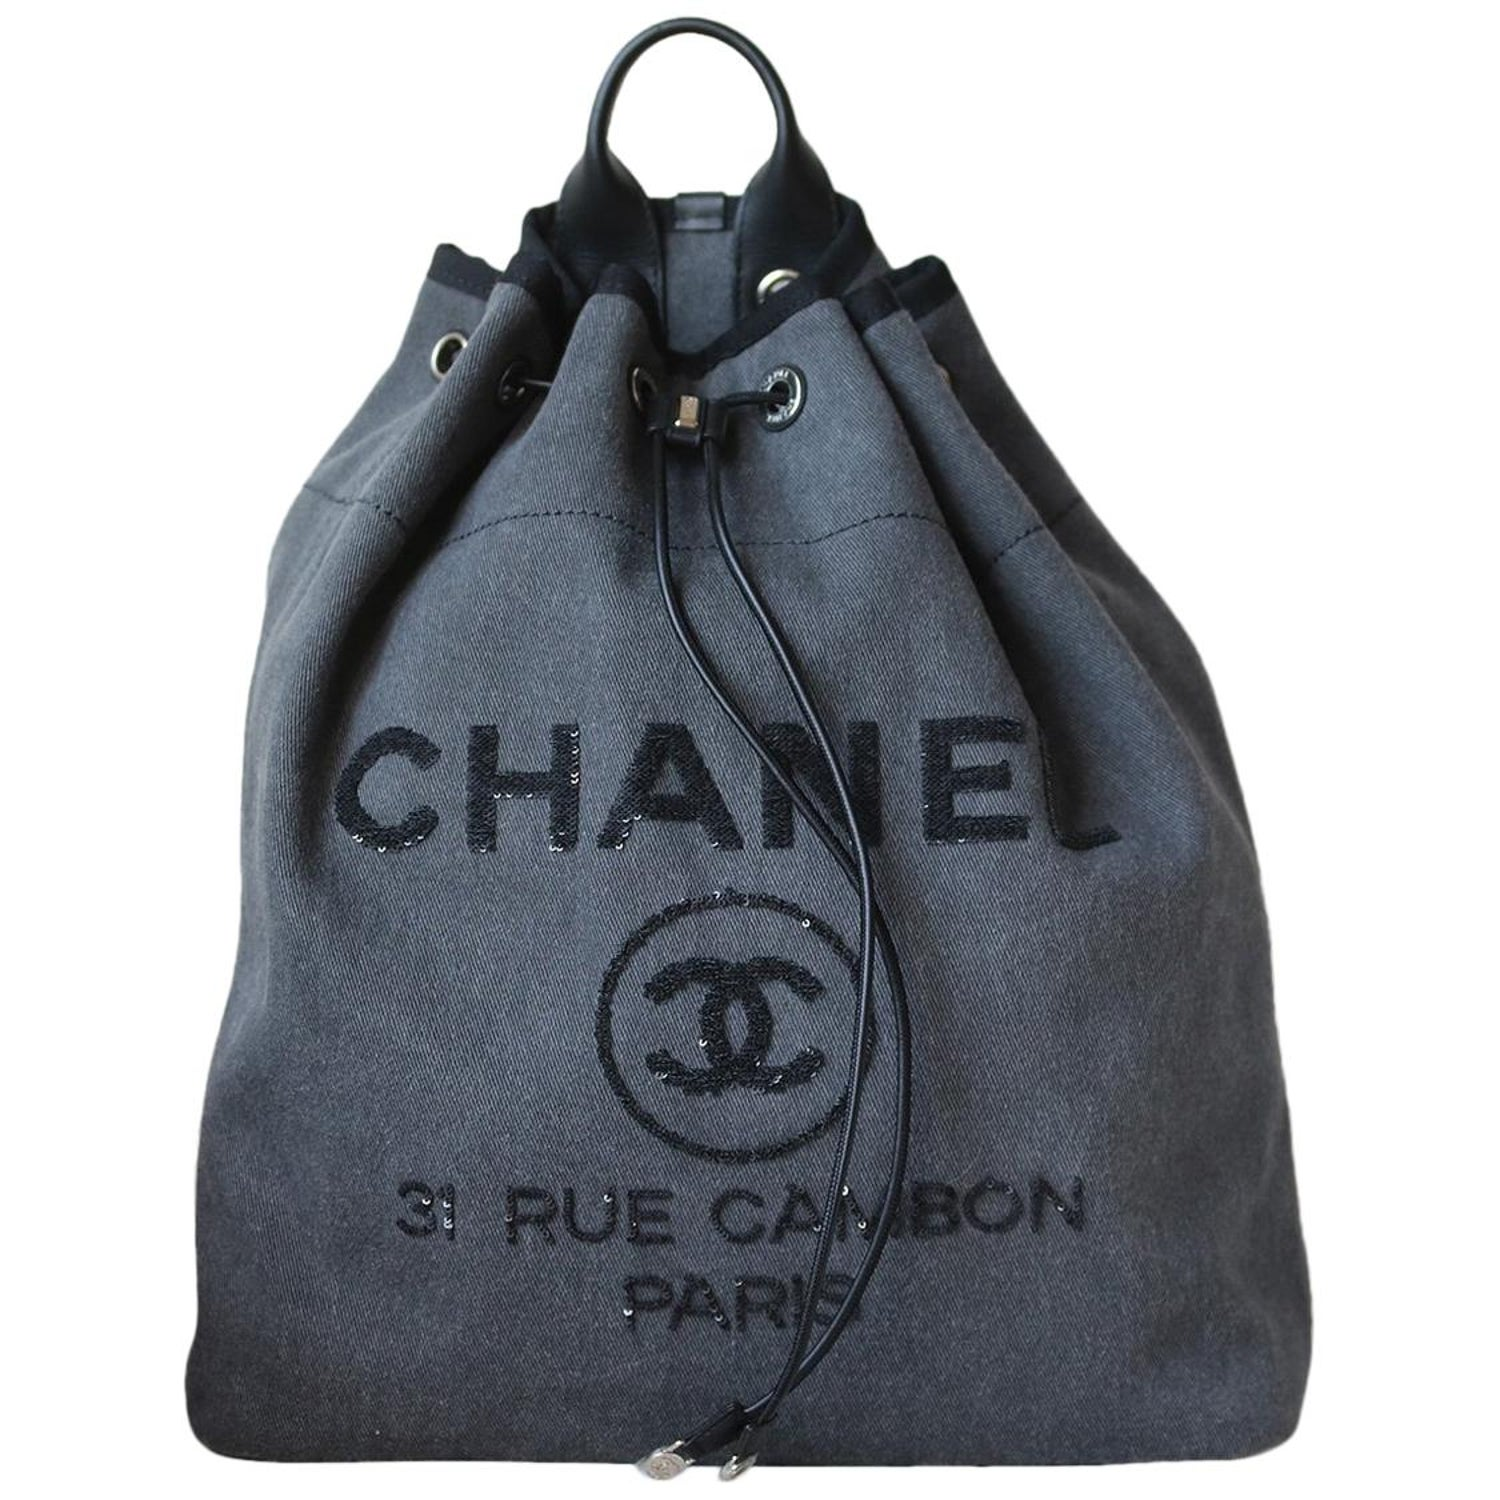 8f8eb467ddc9 Chanel Deauville Canvas Drawstring Backpack at 1stdibs